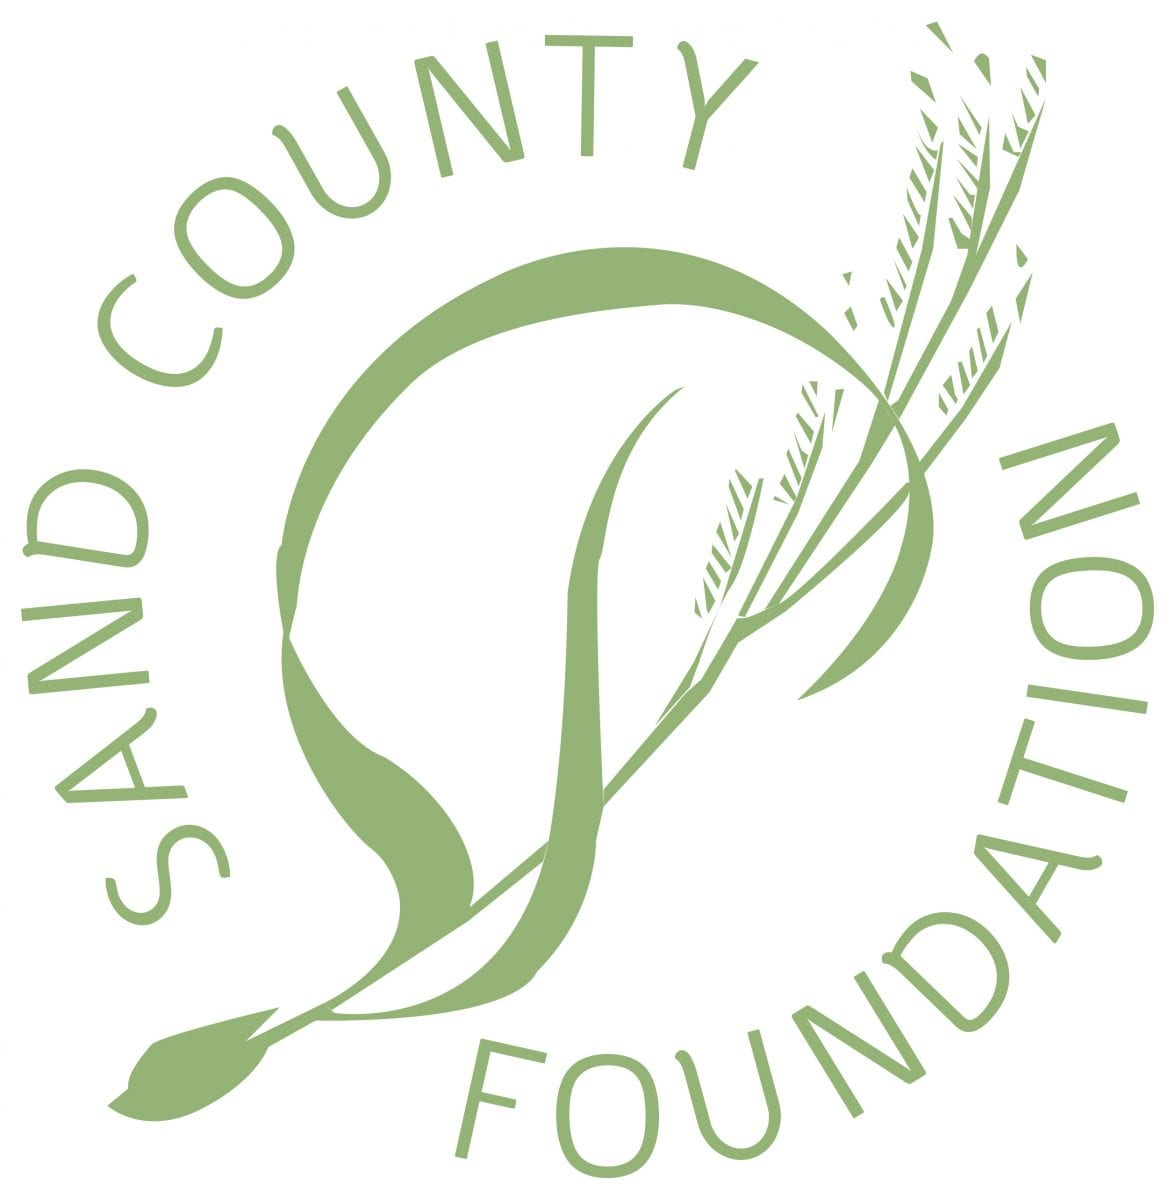 Sound County Foundation